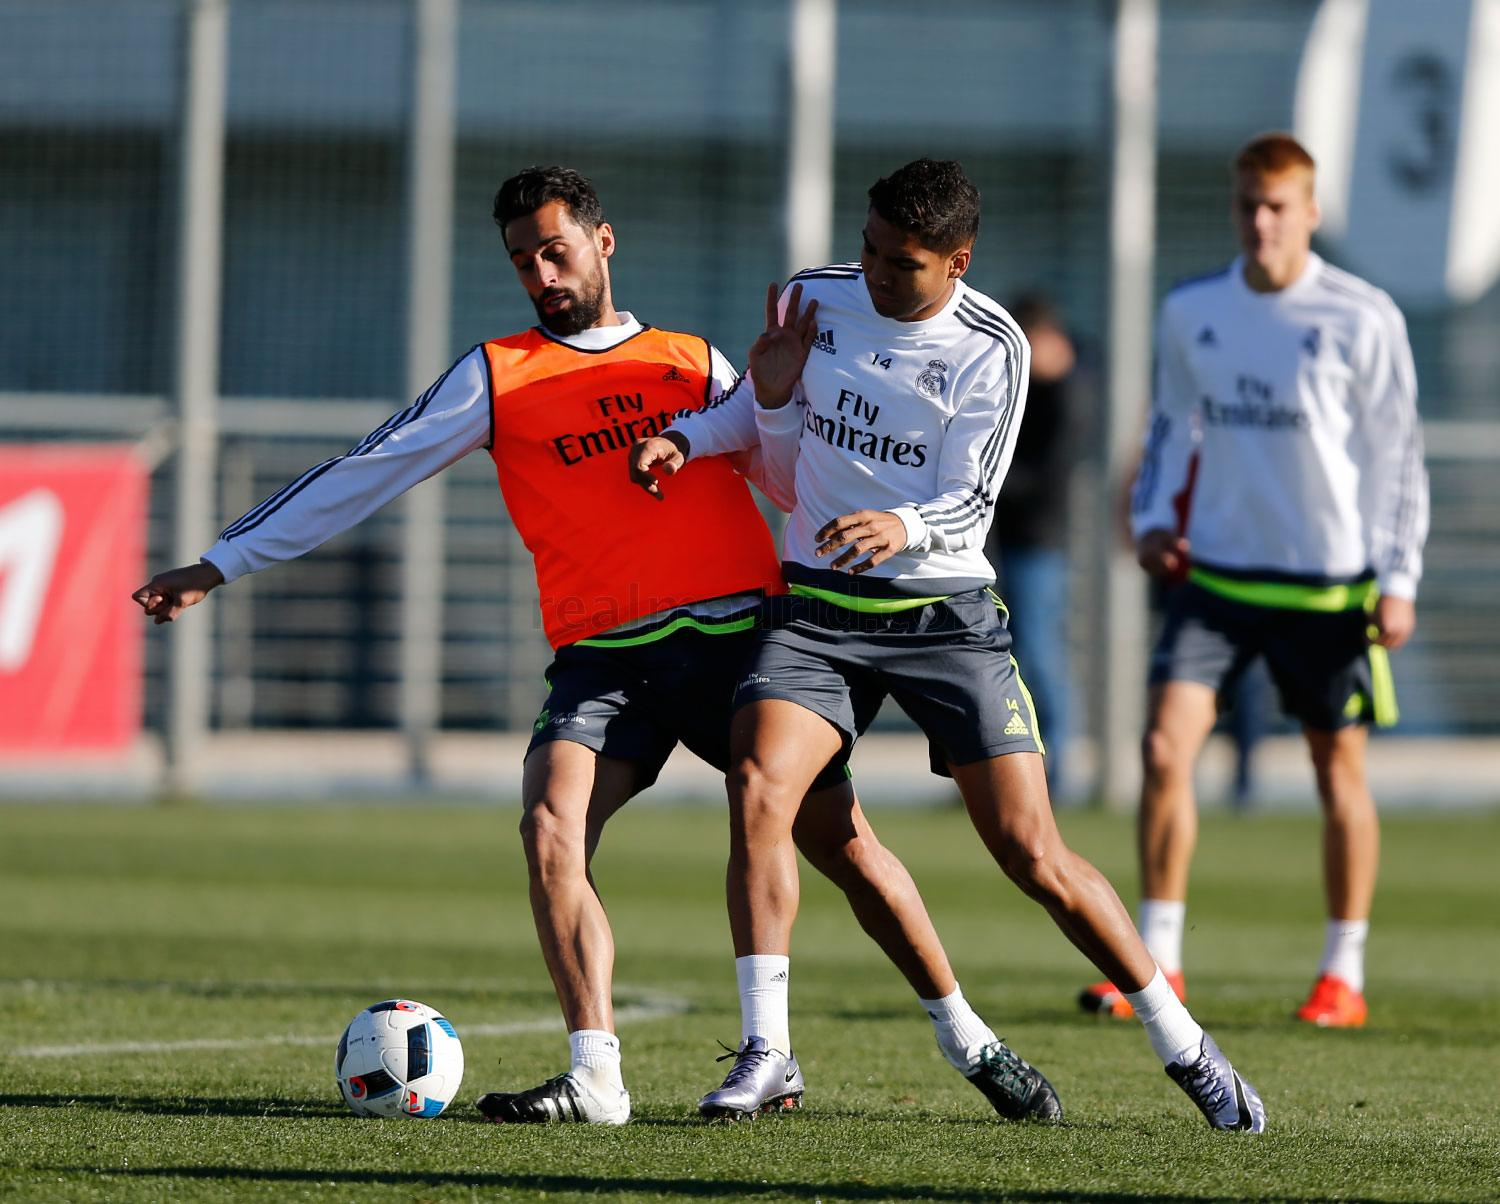 Real Madrid - Entrenamiento del Real Madrid - 30-11-2015